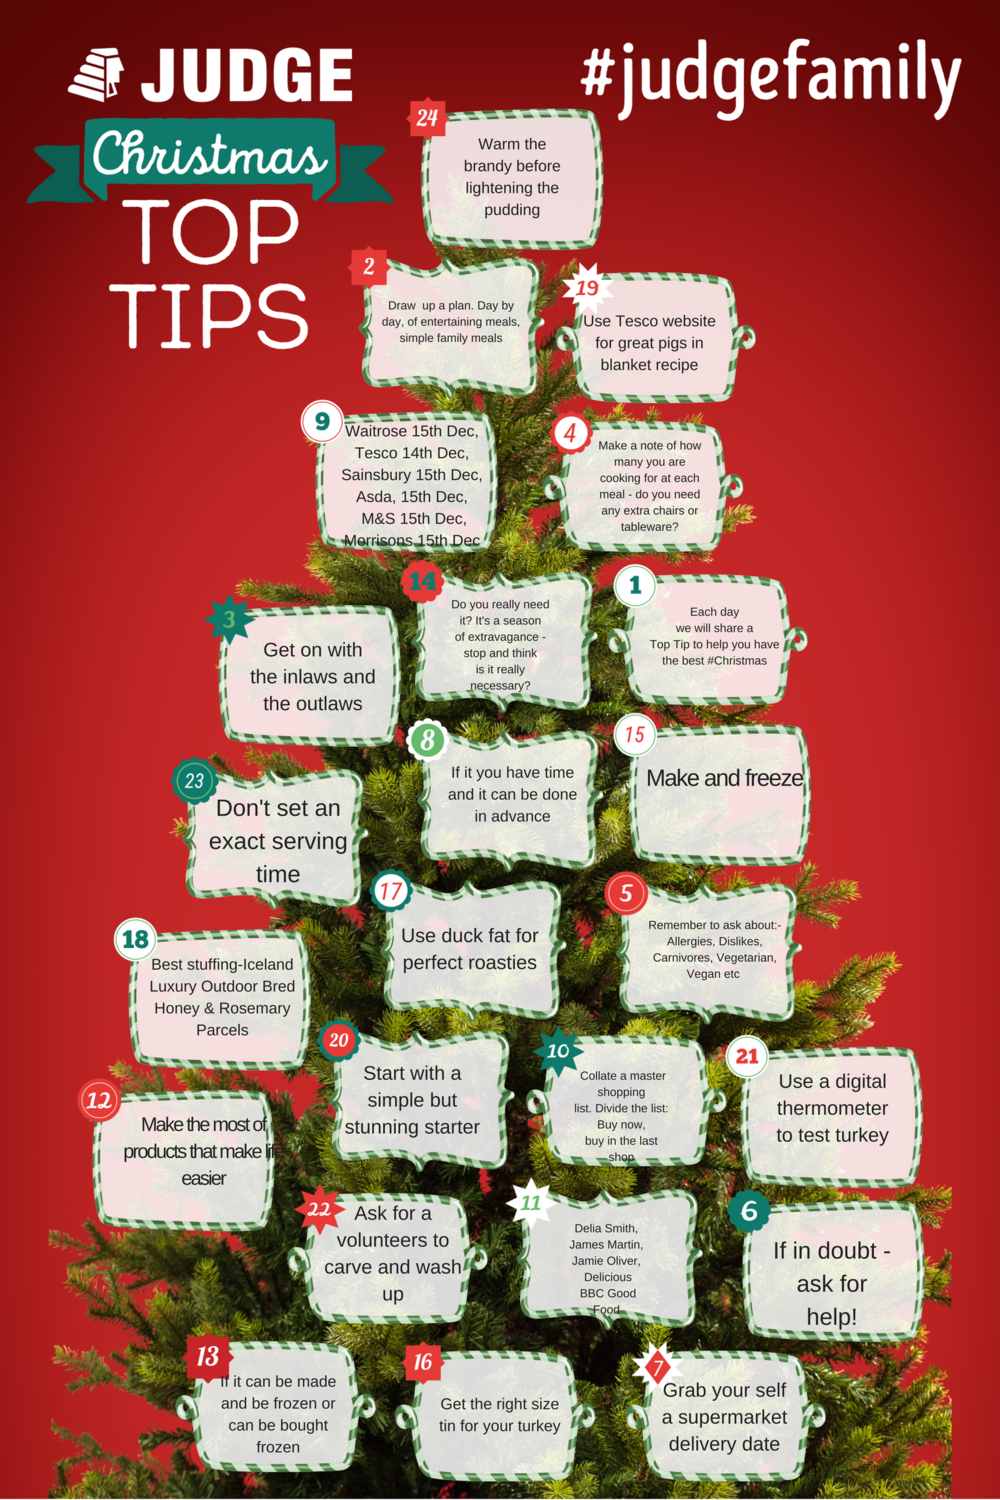 A treeful of top tips from Judge Cookware